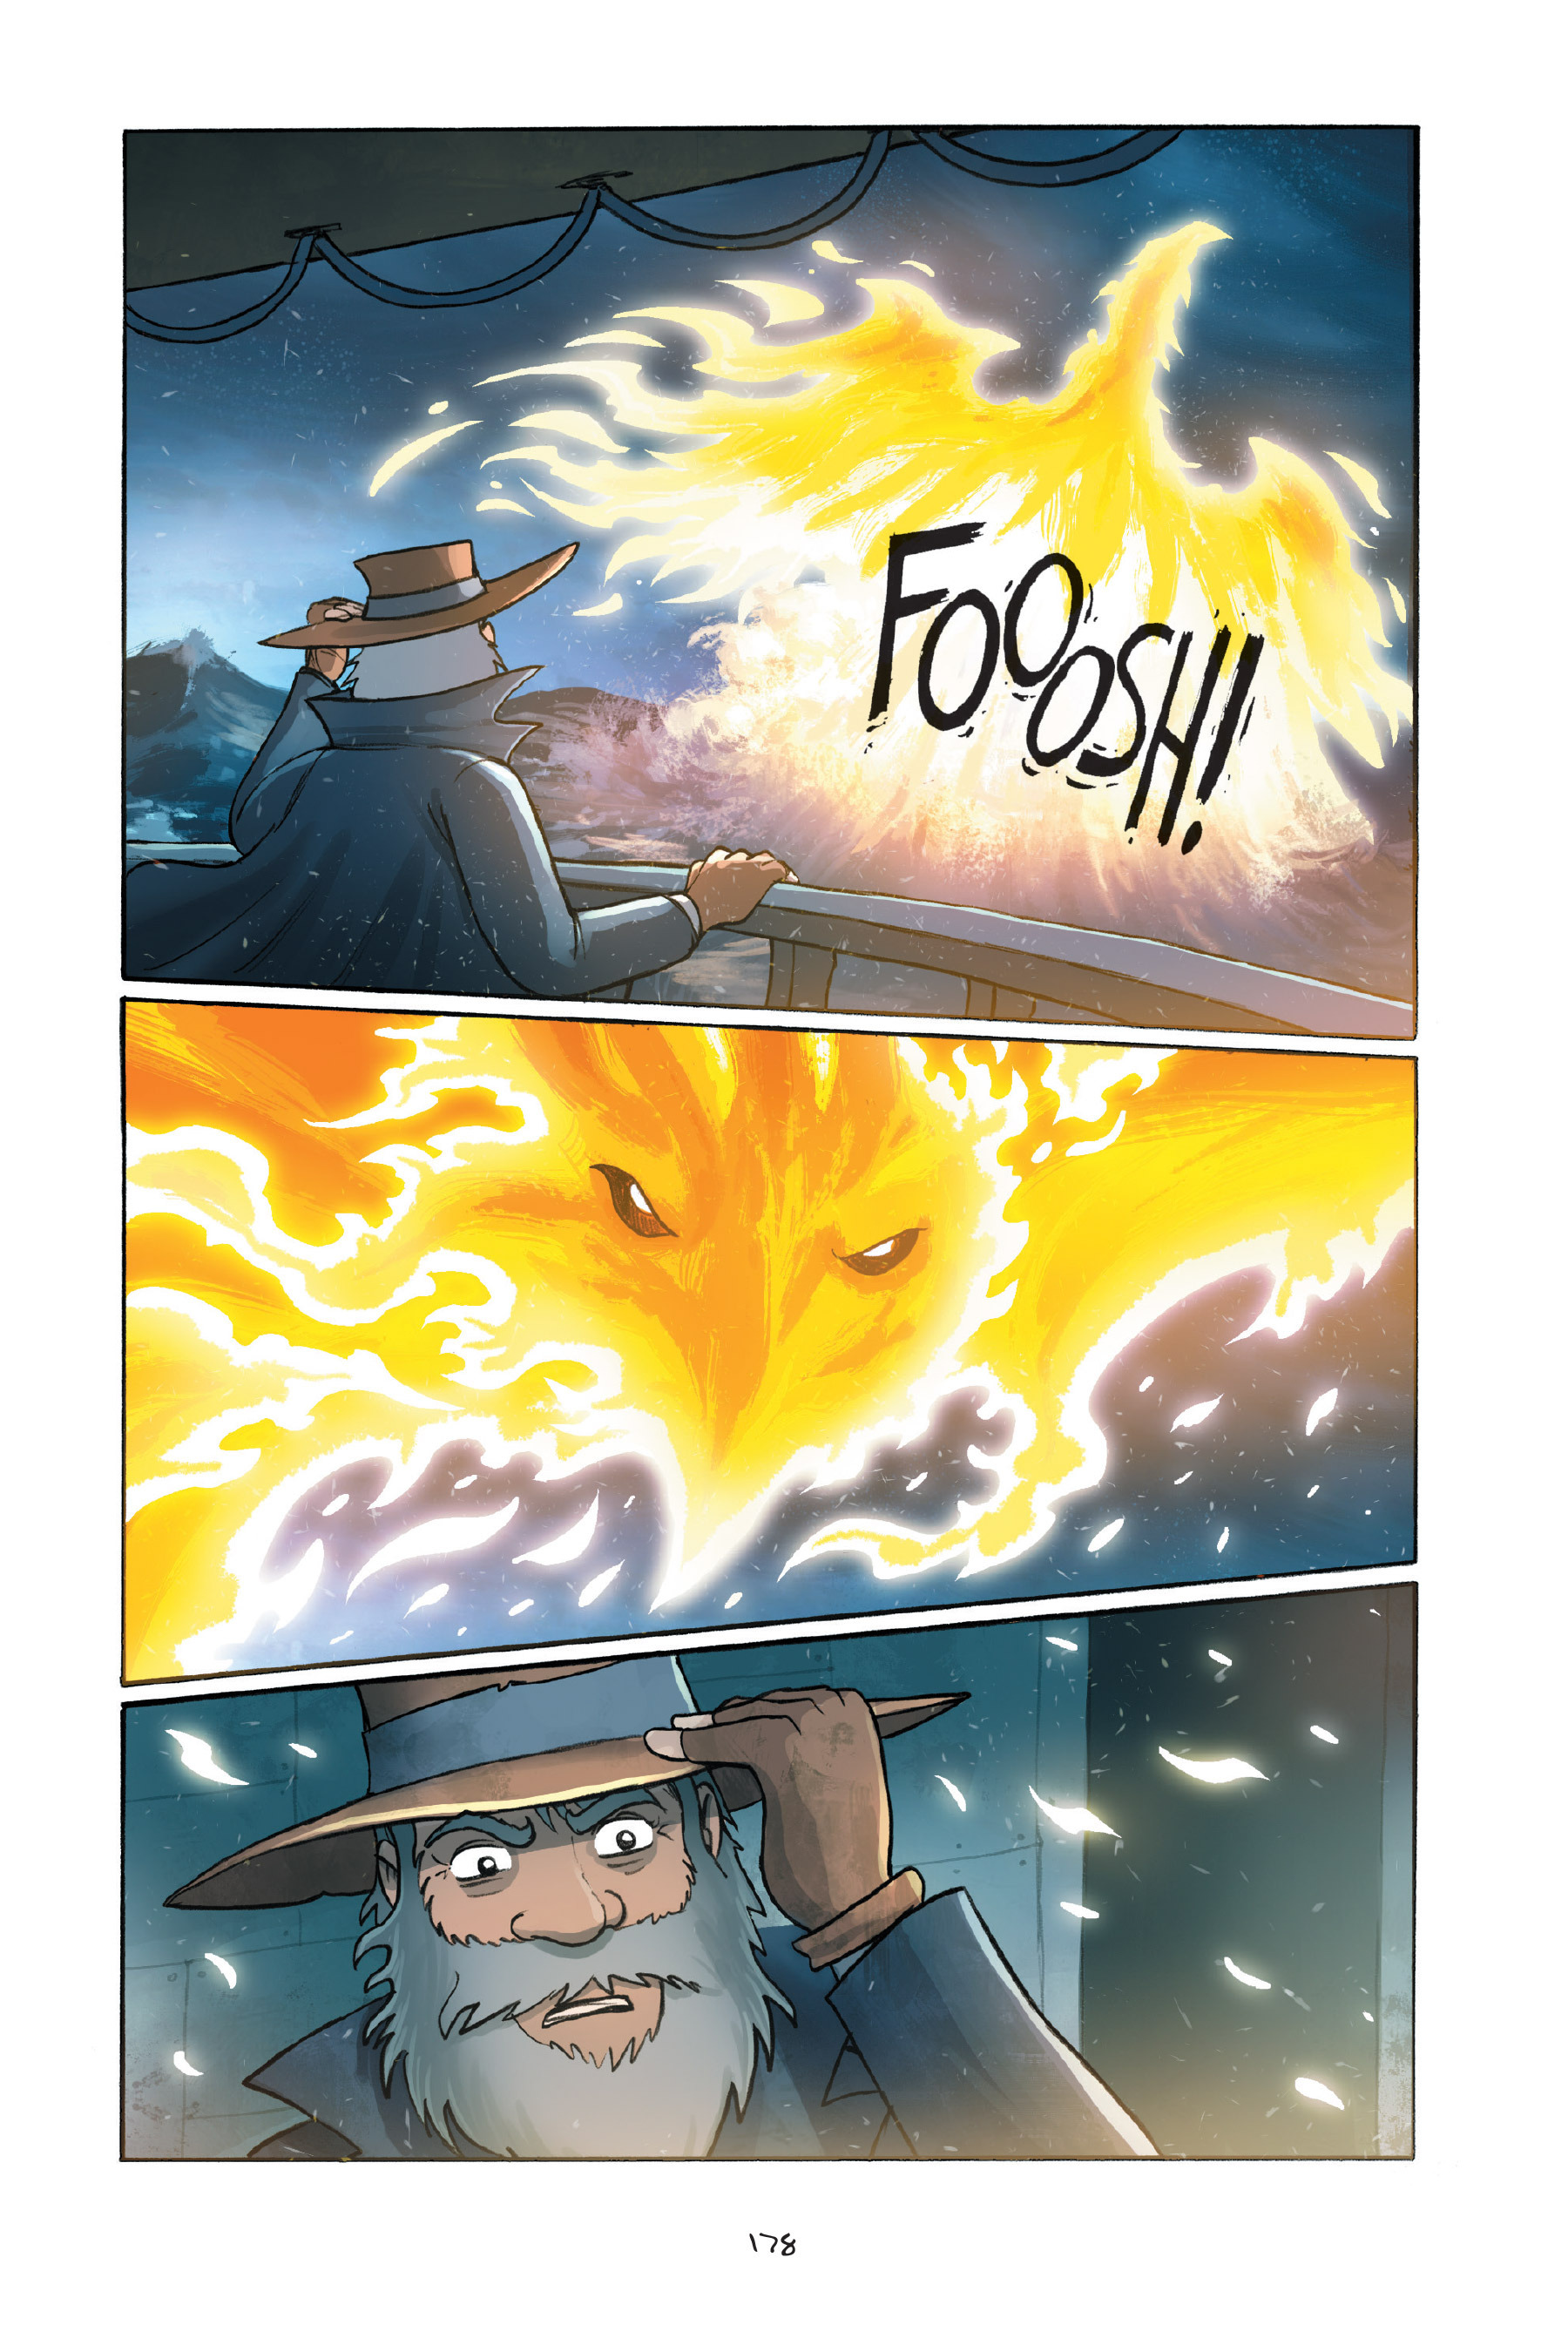 Read online Amulet comic -  Issue #7 - 178